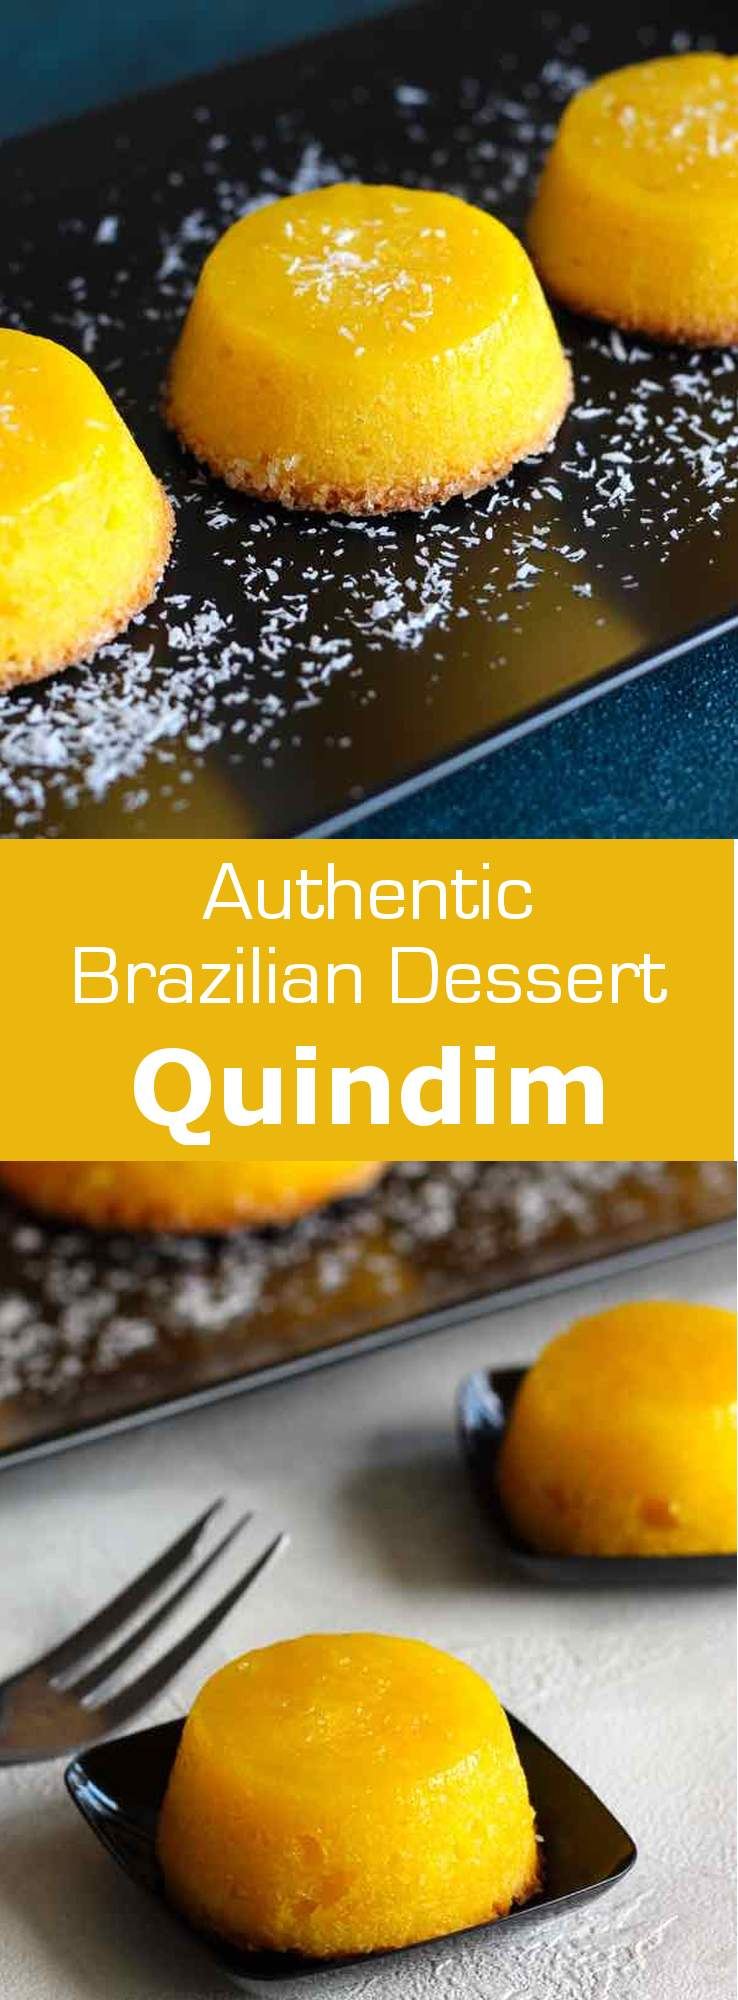 Quindim is a succulent traditional Brazilian dessert originally from Portugal prepared with egg yolks, sugar and coconut. #dessert #brazil #196flavors